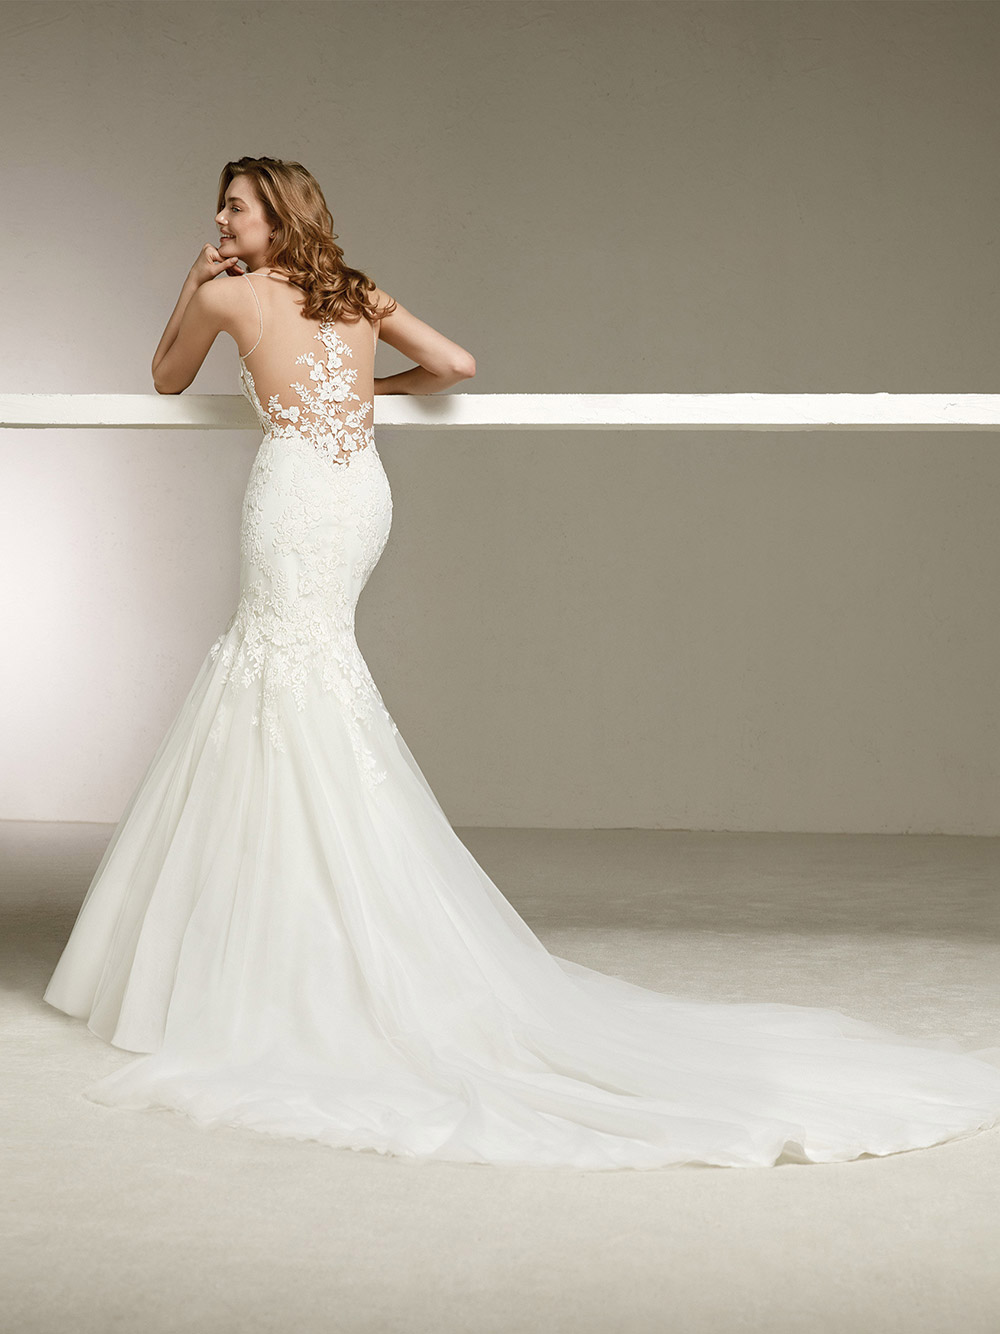 Donatella - Pronovias 2018 Bridal Collection. www.theweddingnotebook.com